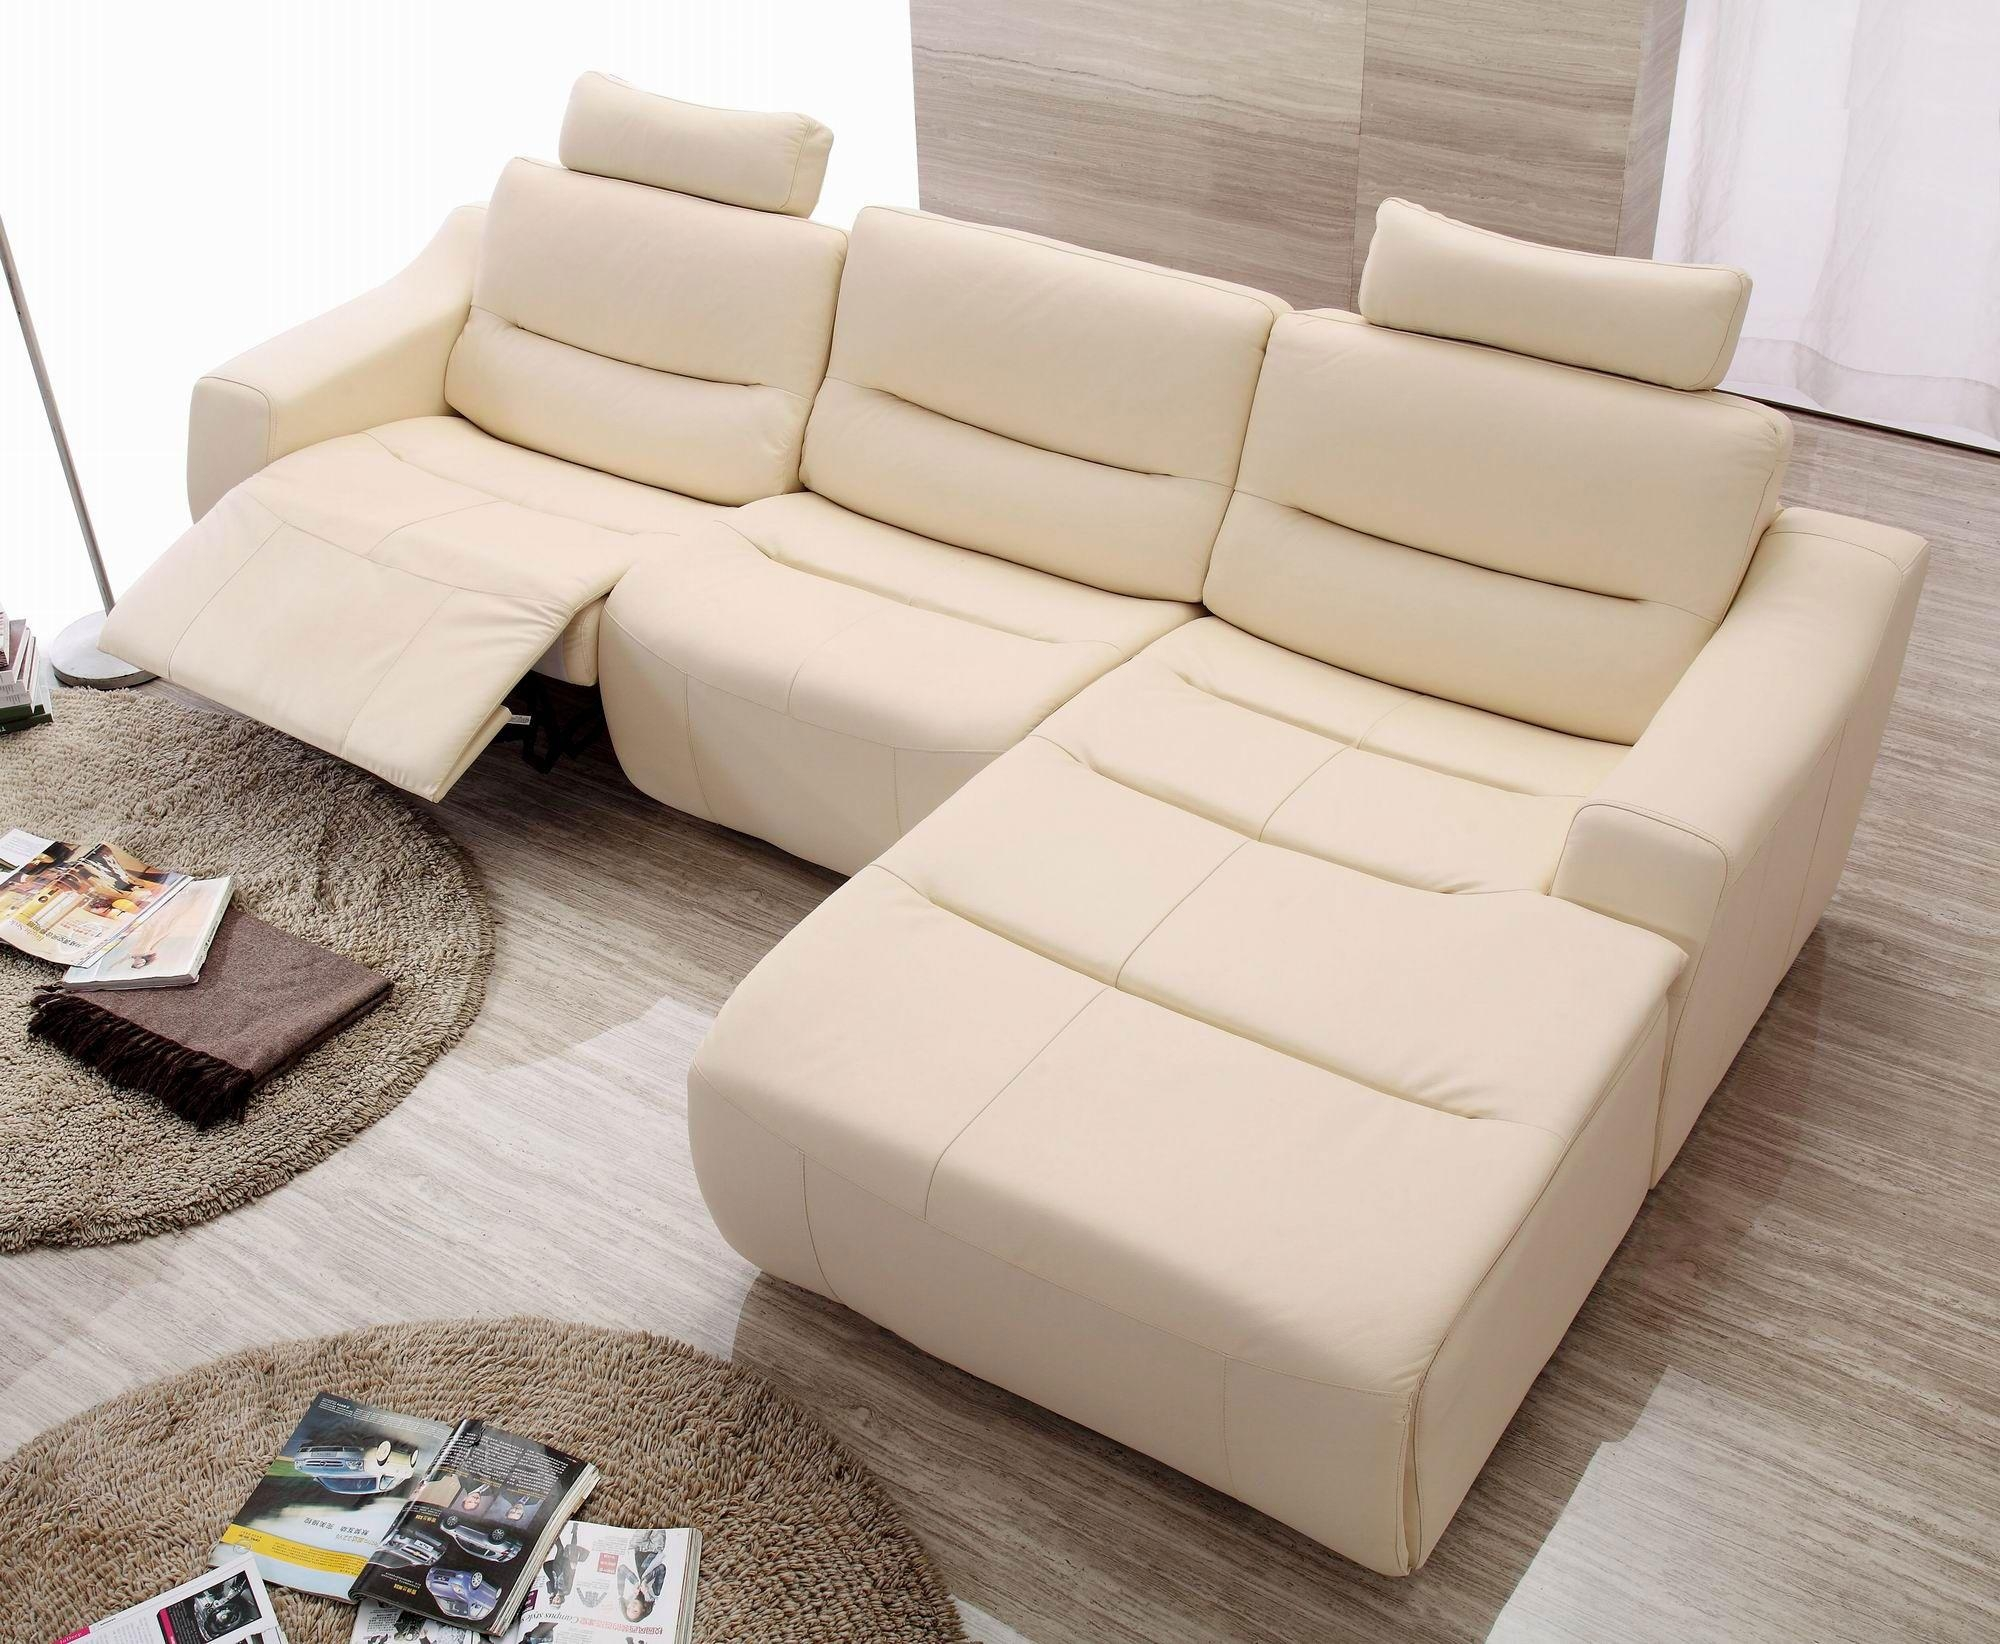 Contemporary Sectional Sofas For Small Spaces Charming Small Scale Regarding Small Scale Sectionals (Image 3 of 20)